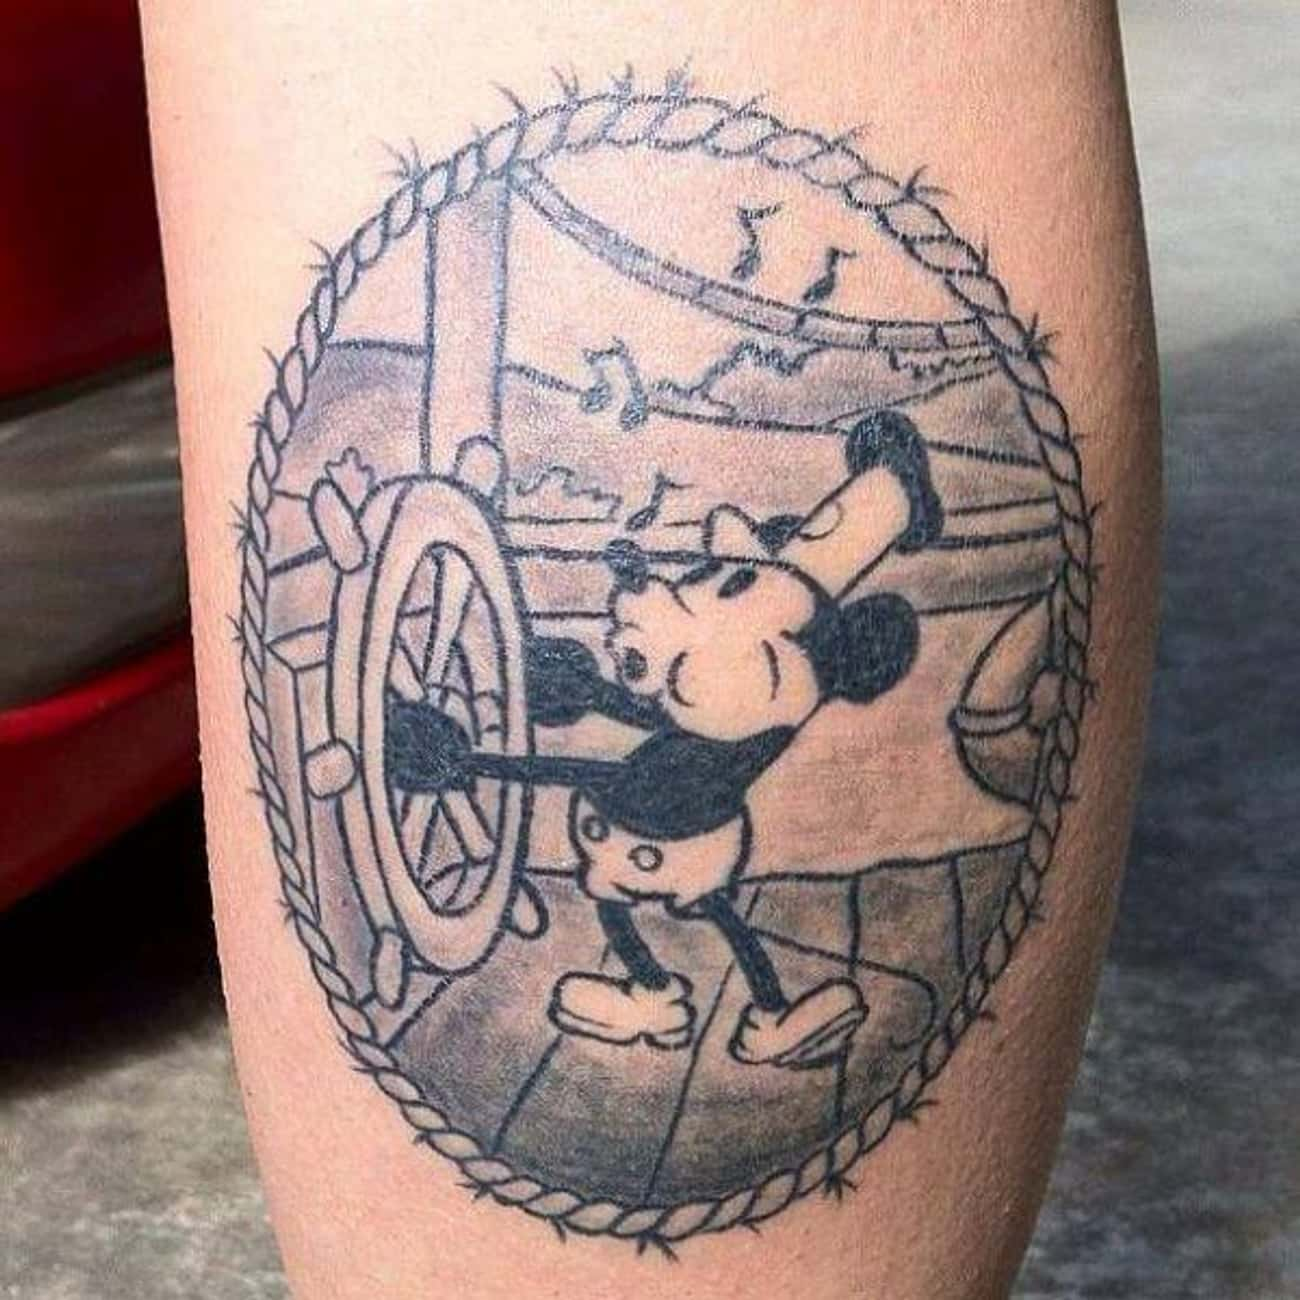 Steamboat Mickey Looks Great I is listed (or ranked) 4 on the list The Coolest Disney Tattoos